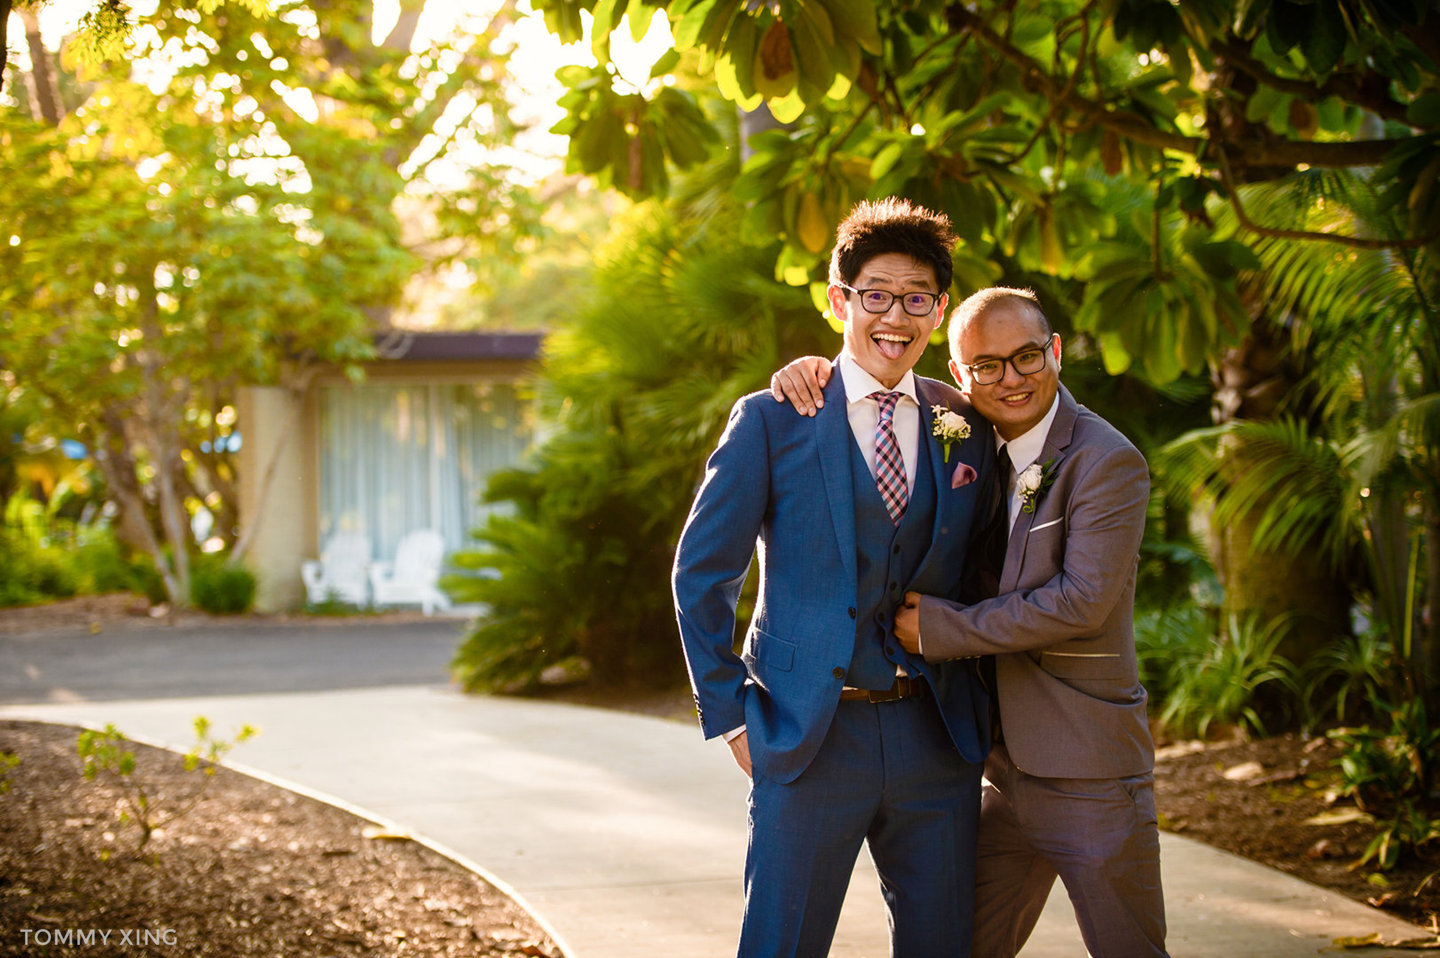 Paradise Point Resort Wedding Xiaolu & Bin San Diego 圣地亚哥婚礼摄影跟拍 Tommy Xing Photography 洛杉矶婚礼婚纱照摄影师 193.jpg